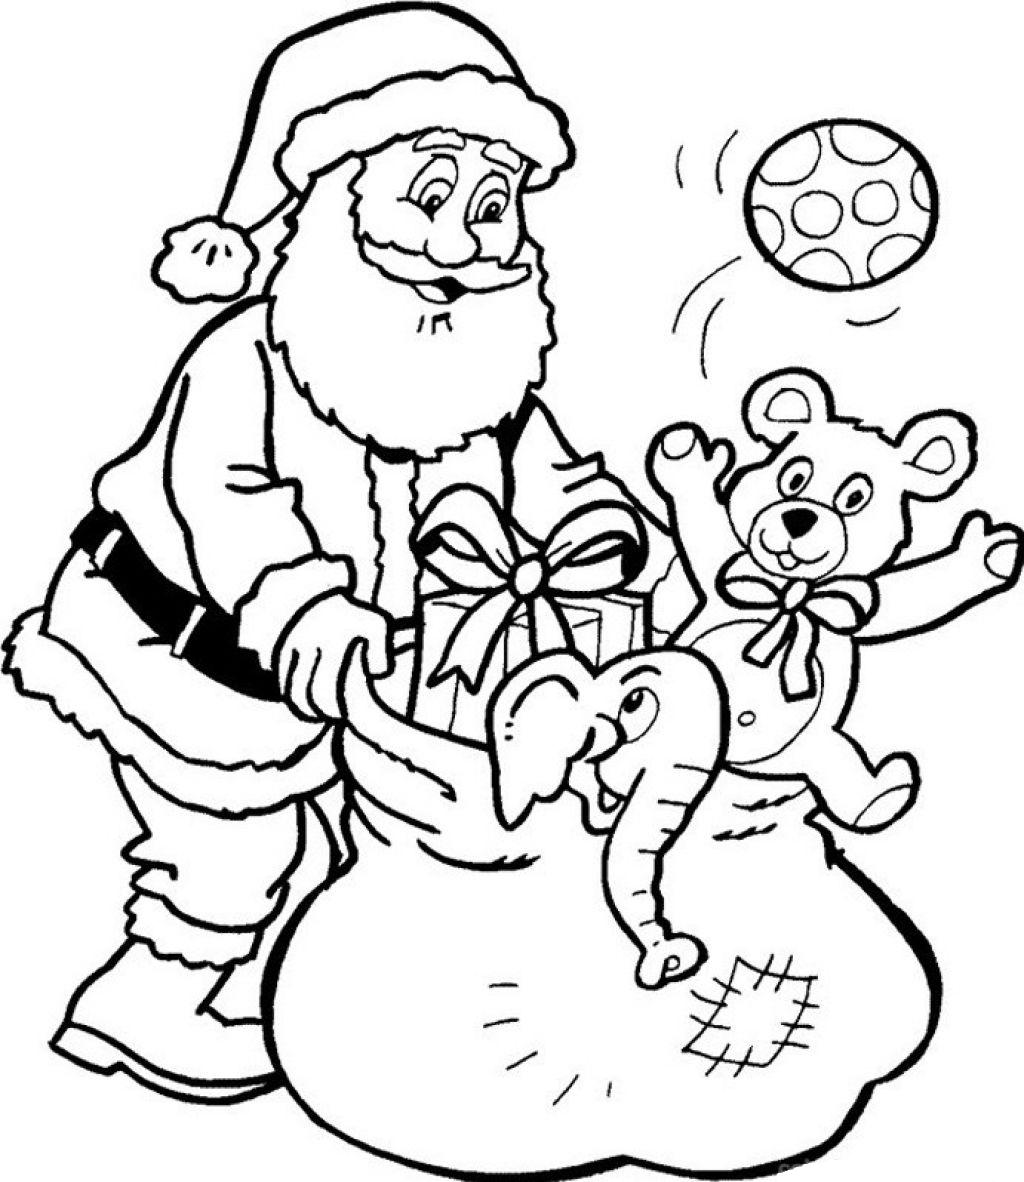 Merry Christmas Coloring Pages To Download And Print For Free: Merry Christmas Coloring Pages